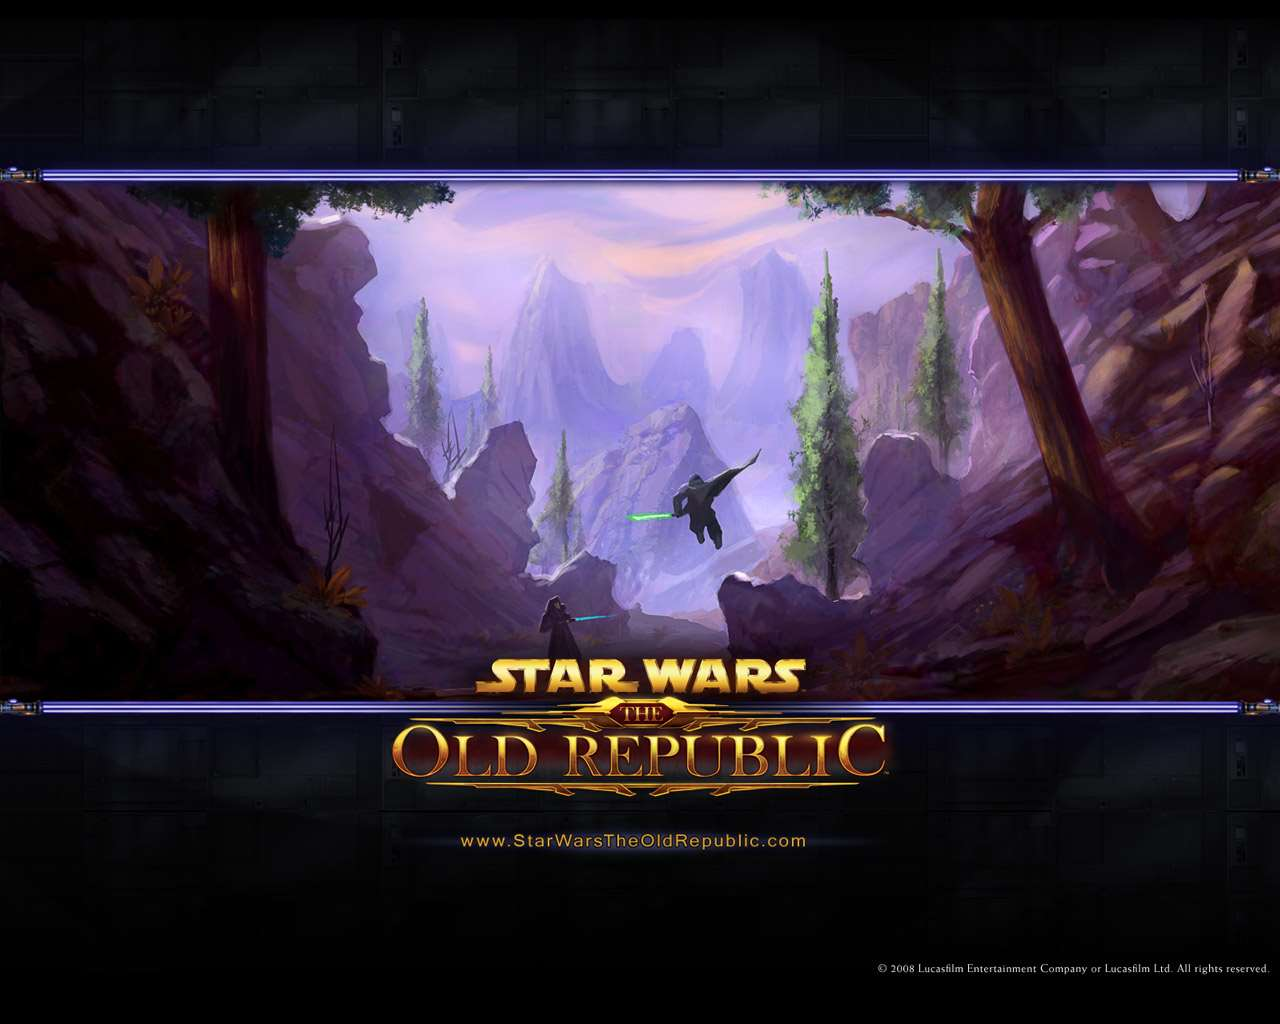 Free Download Official Star Wars The Old Republic Wallpaper Jedi Lightsaber 1280x1024 For Your Desktop Mobile Tablet Explore 49 Swtor Official Wallpaper Star Wars Wallpapers 1920x1080